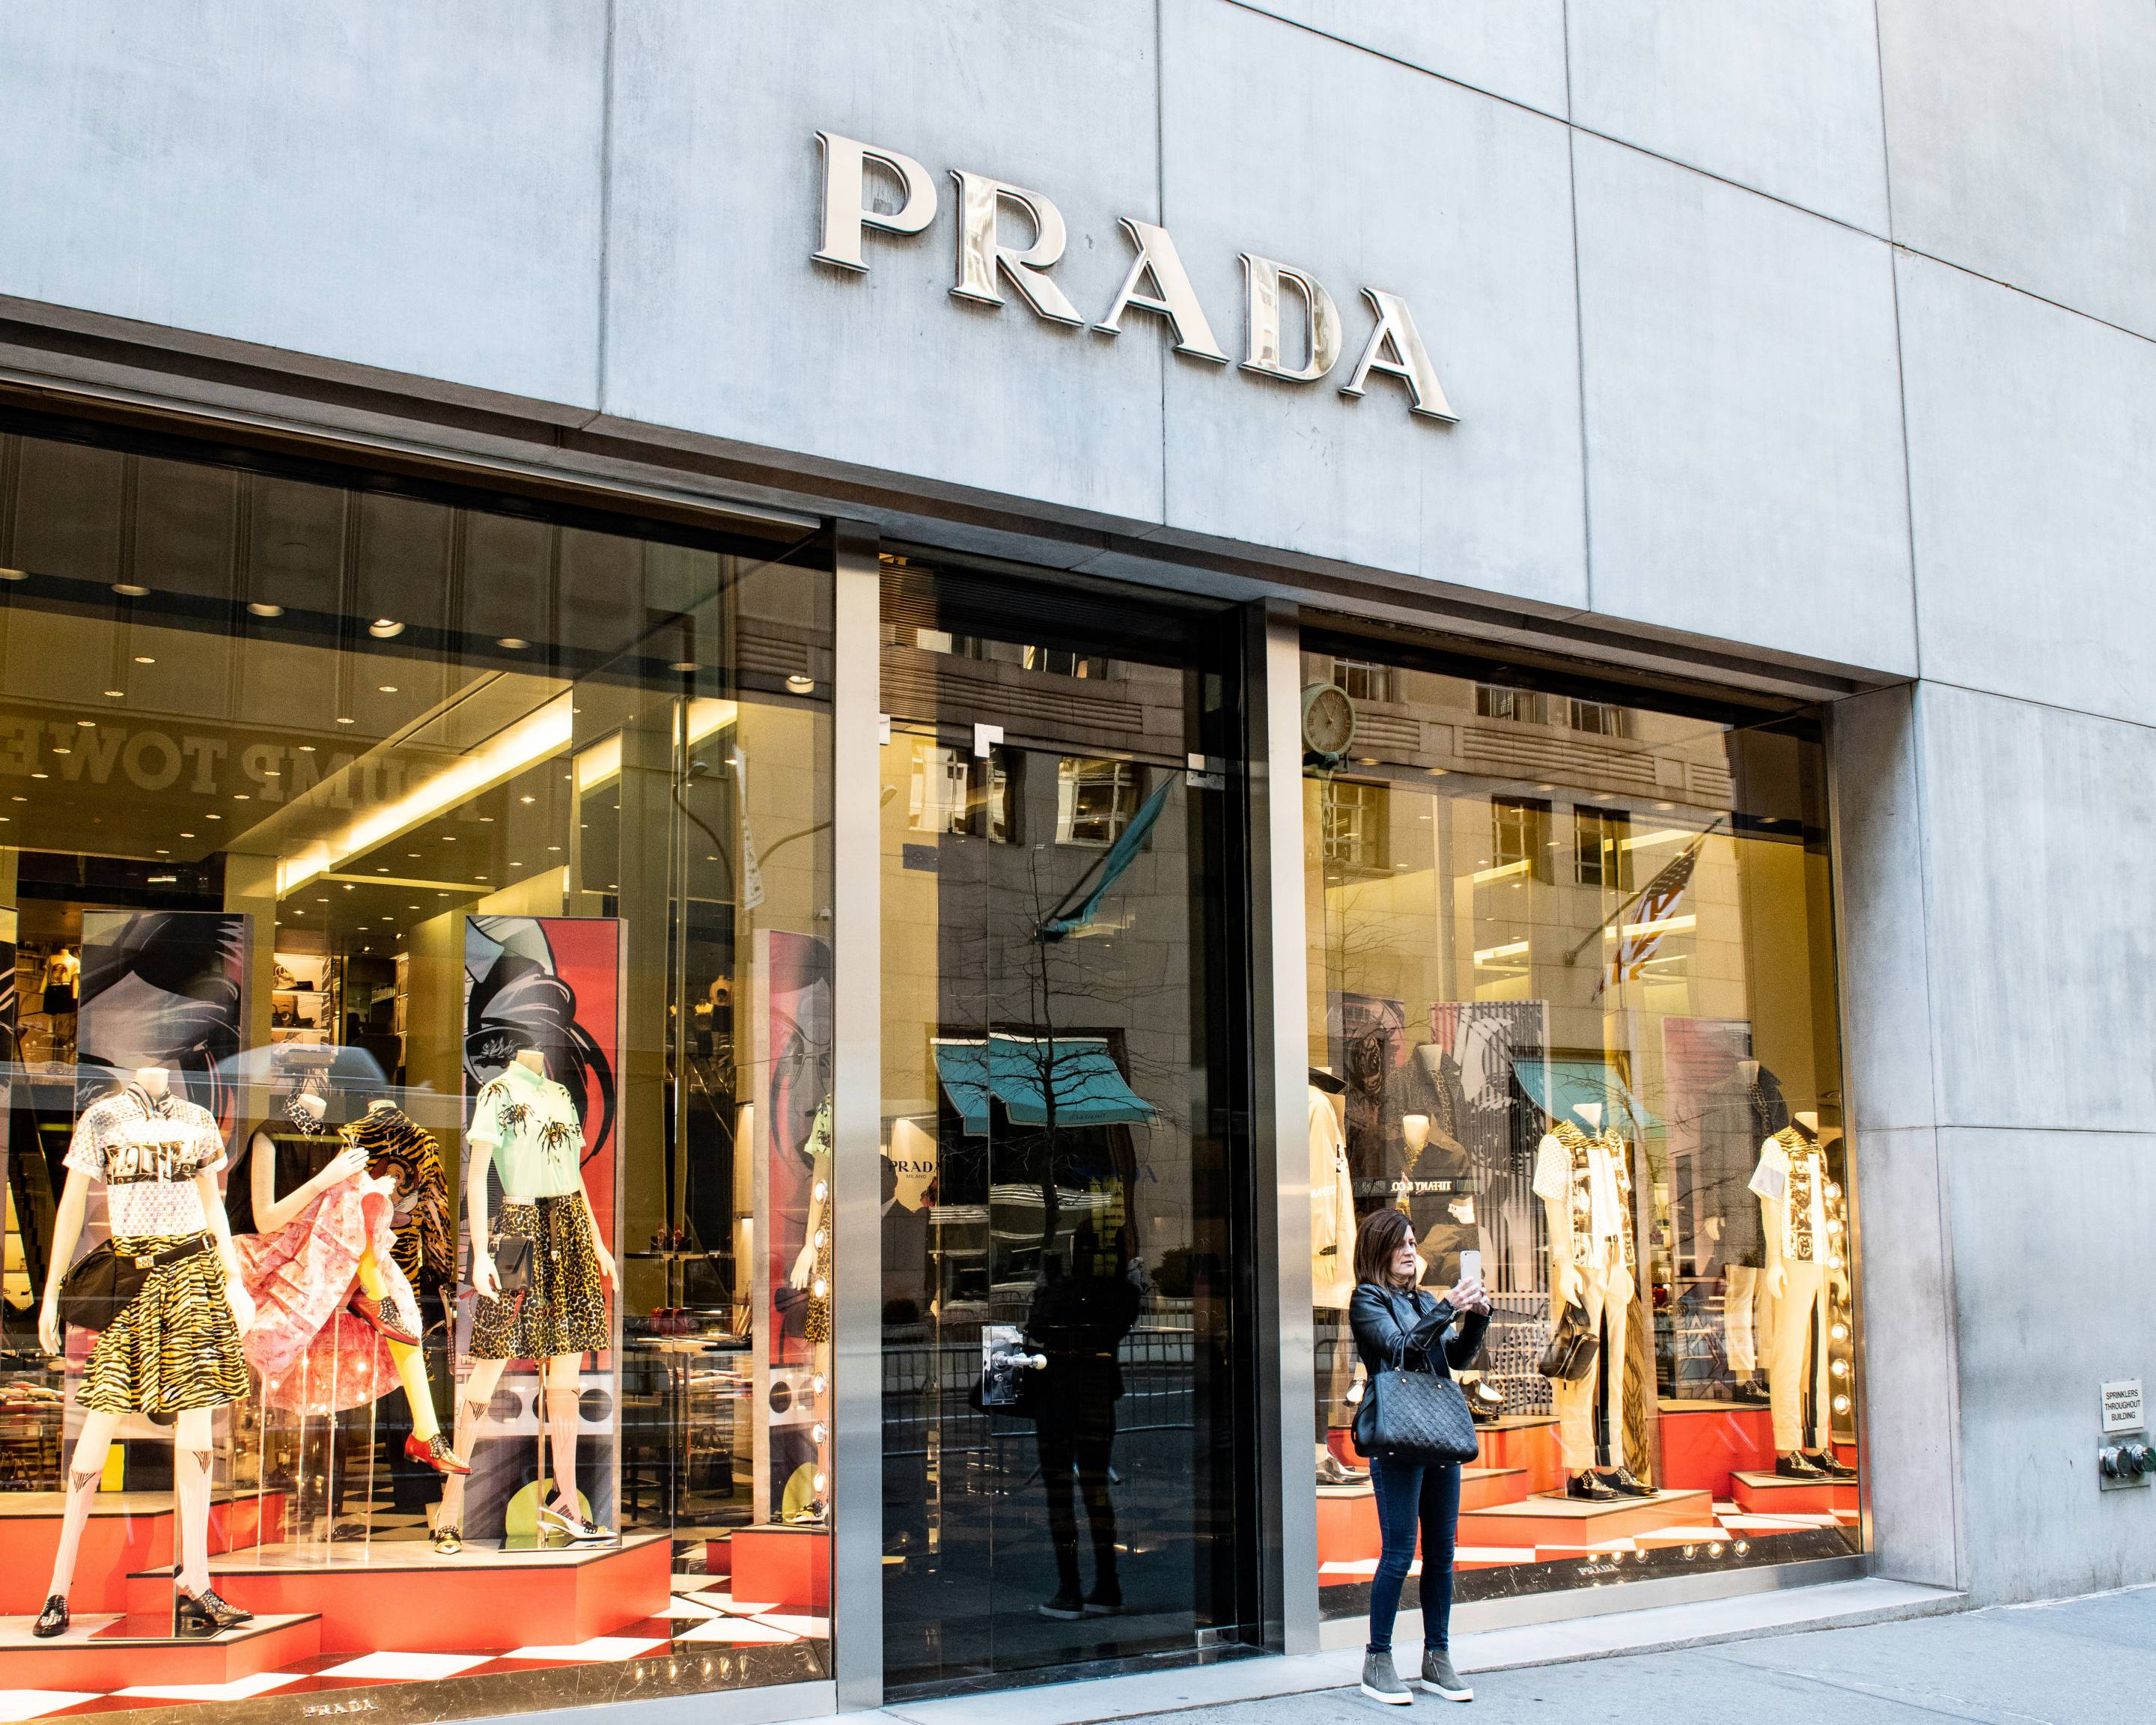 Prada store on Fifth Avenue in New York City